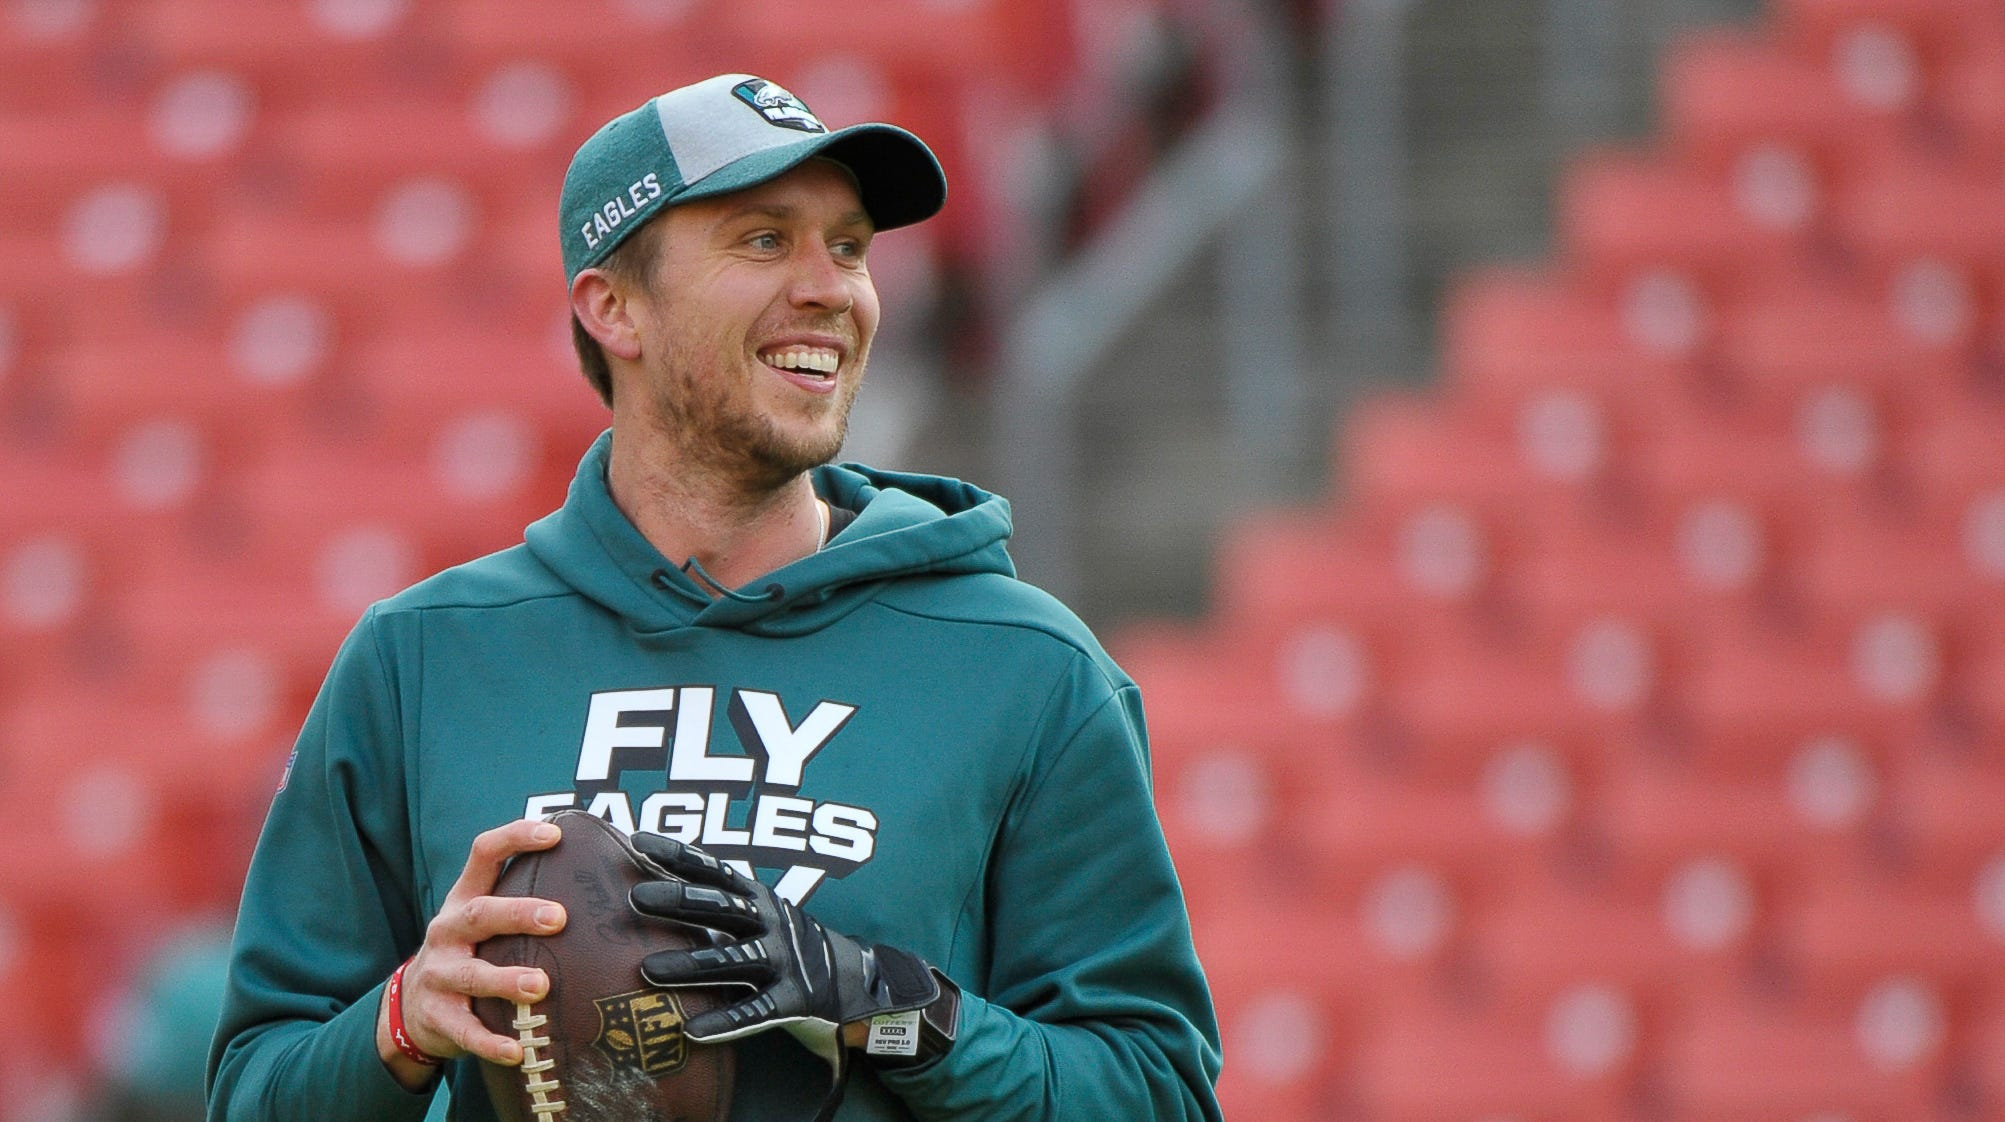 The NFL released the Eagles' preseason schedule, plus the team adds three players from the Alliance of American Football, including a quarterback.